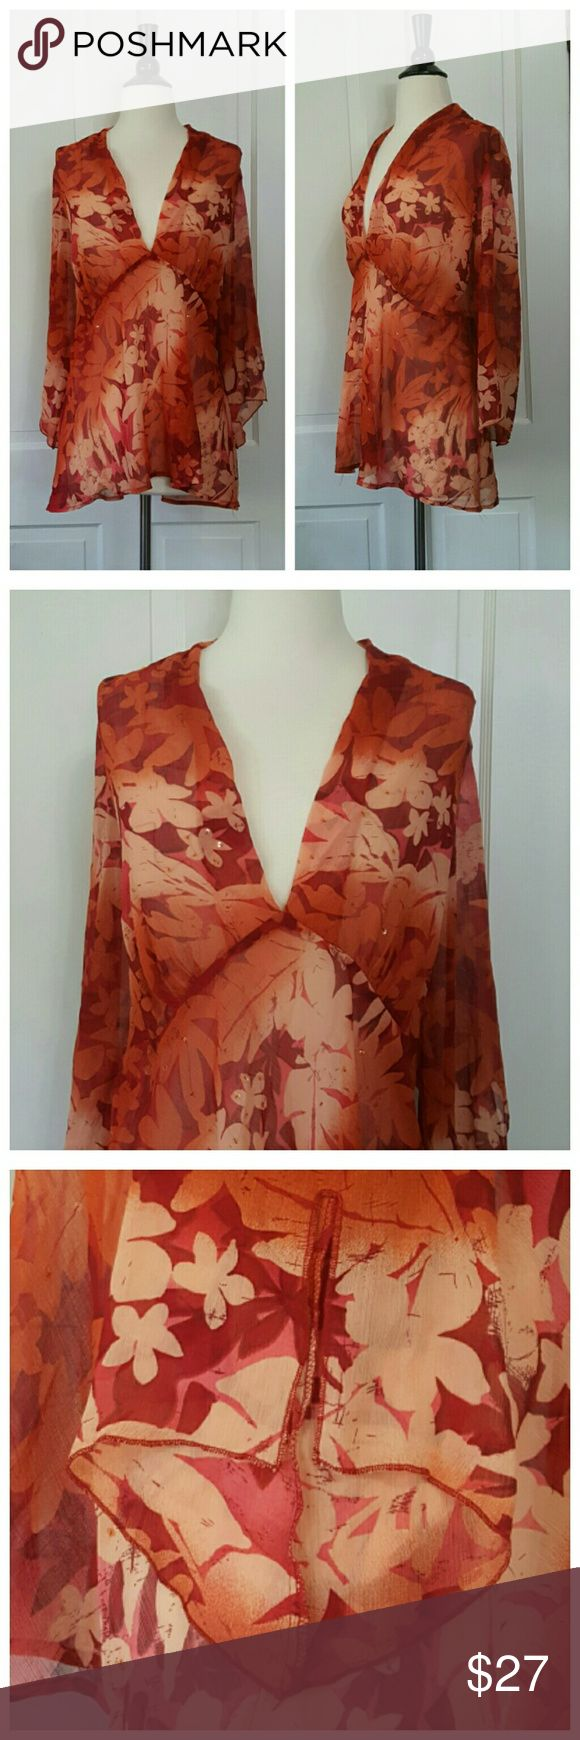 New York City Design Orange And Rust Top New York City Design sheer v-neck top, long sleeves with a slight bell and slit at wrist. A very light scattering of pale orange beads and sequins. New York City Design Tops